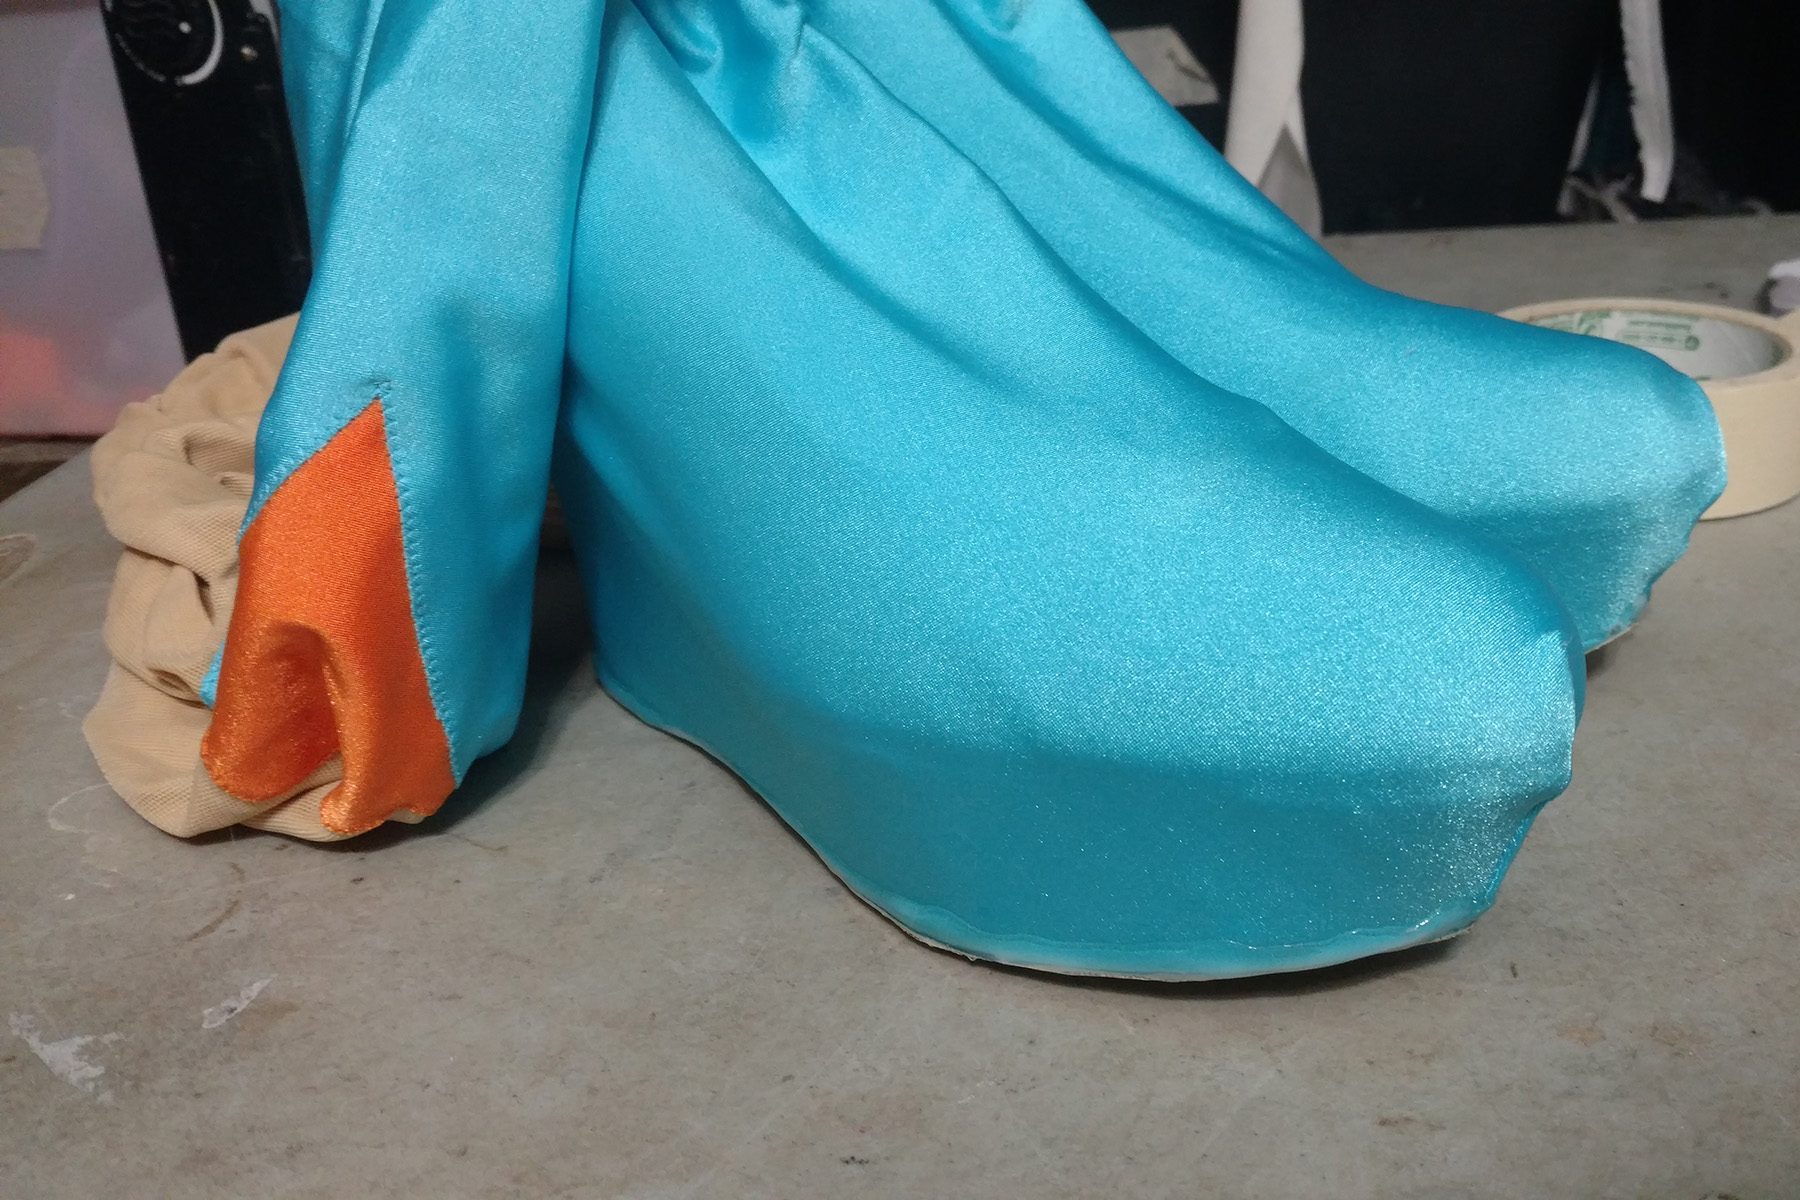 Two high, wedge heeled shoes are covered in bright blue spandex.